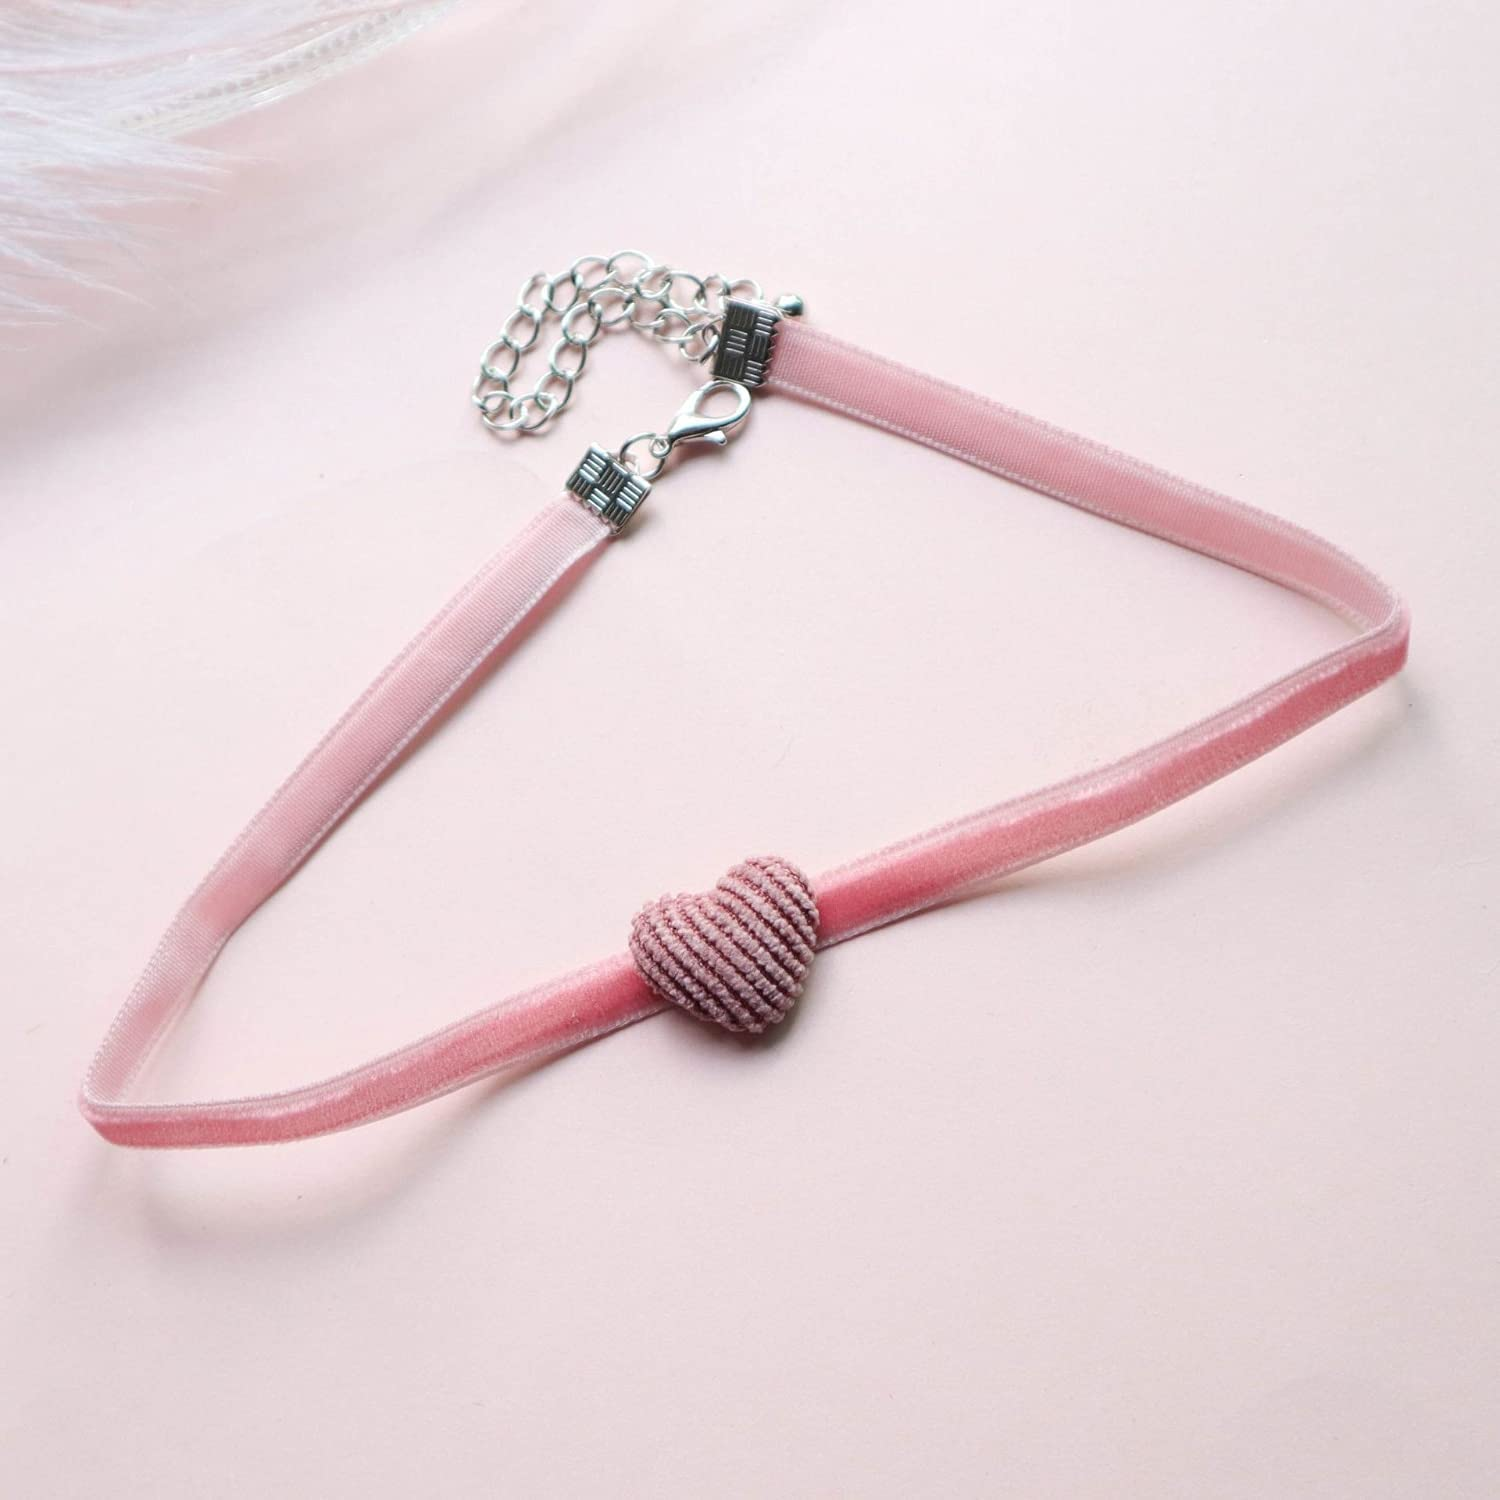 xunyang Japan and Korea Multi-Style Lace Short Clavicle Chain Collar Necklace for Woman Fashion Jewelry (Metal Color : 16)